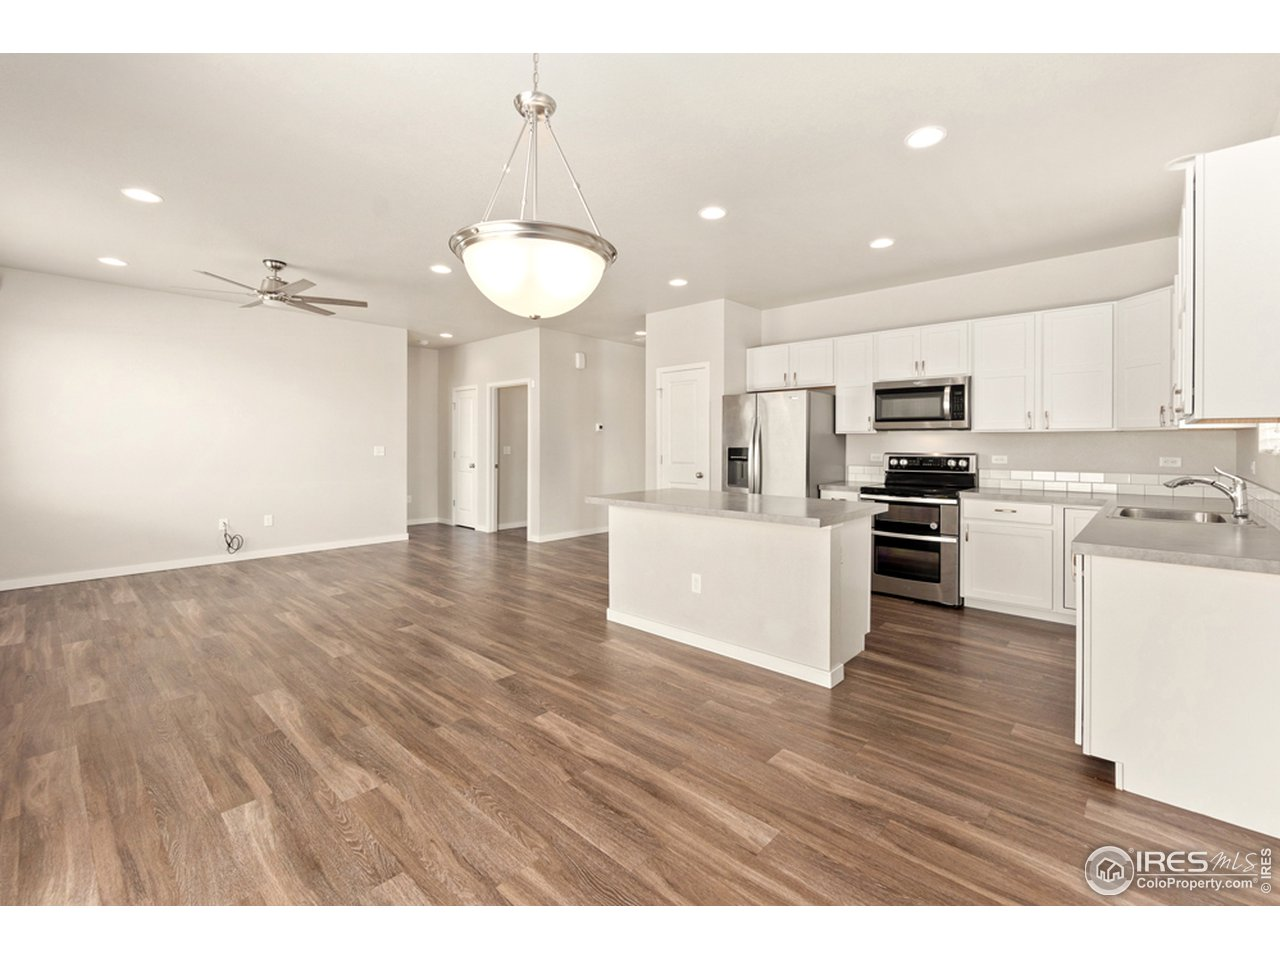 Bright White kitchen with LVP flooring throughout hallway and main living areas